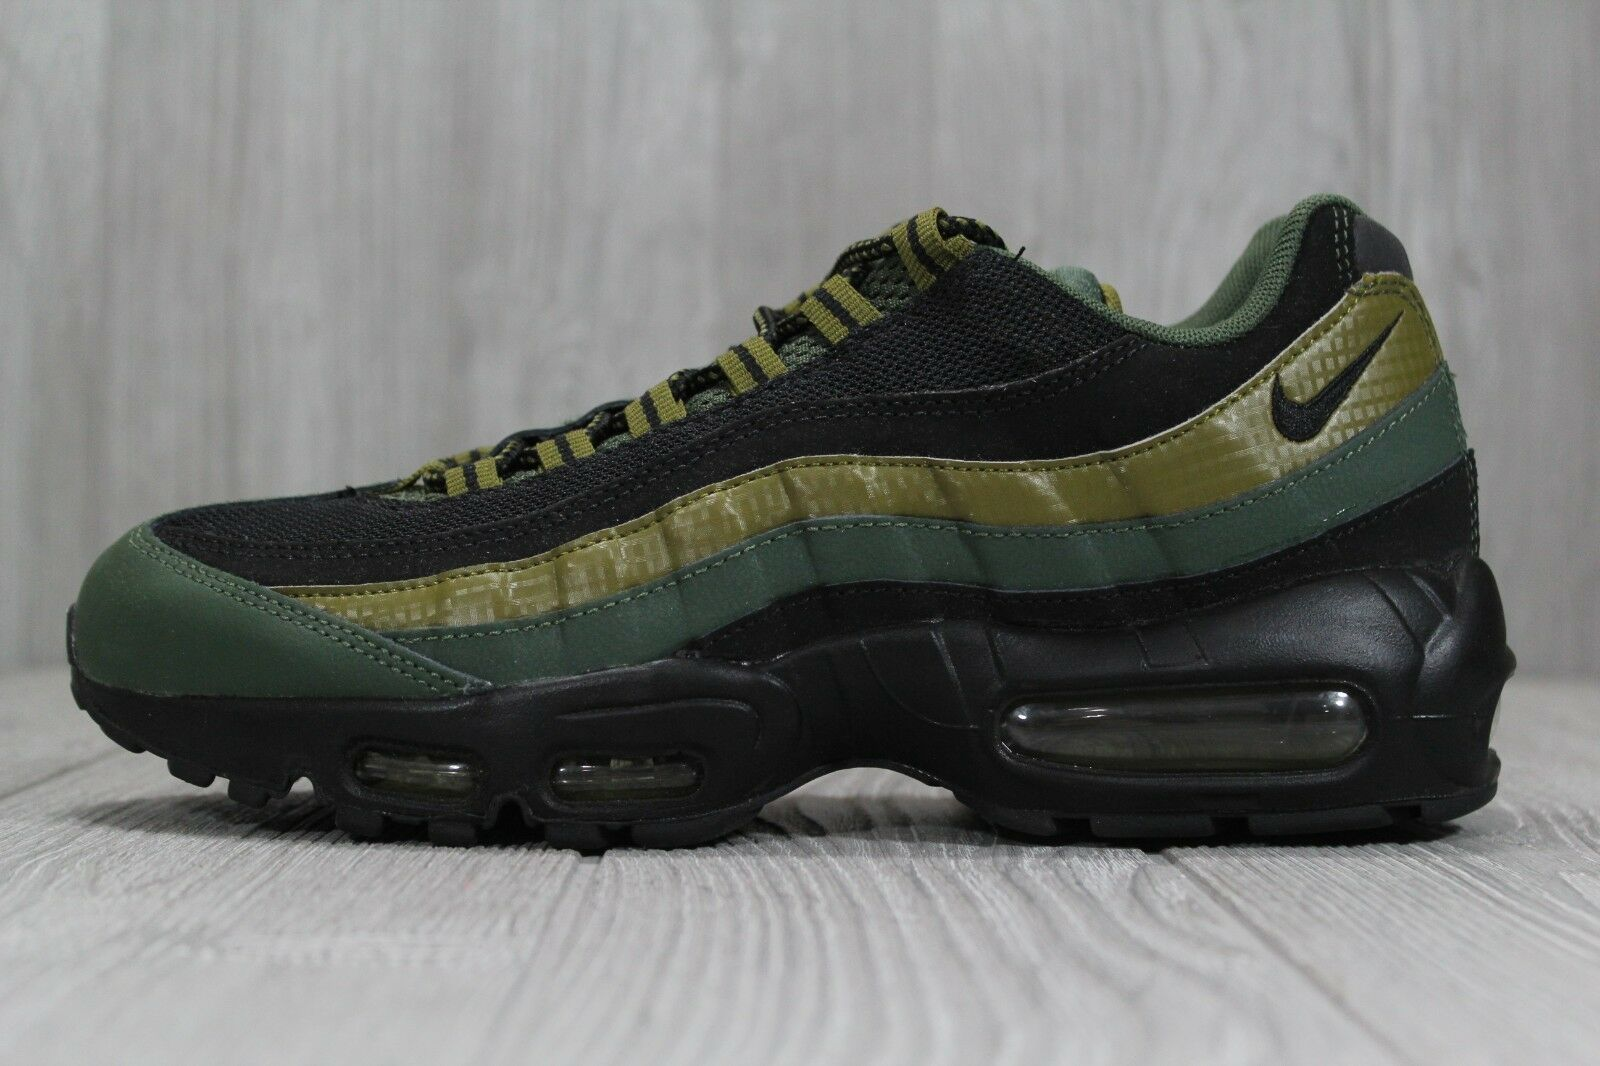 best sneakers 6e16d a82d9 37 Nike Air Max 95 Essential Carbon Green Black 749766 300 Mens shoes 8 9.5  10.5